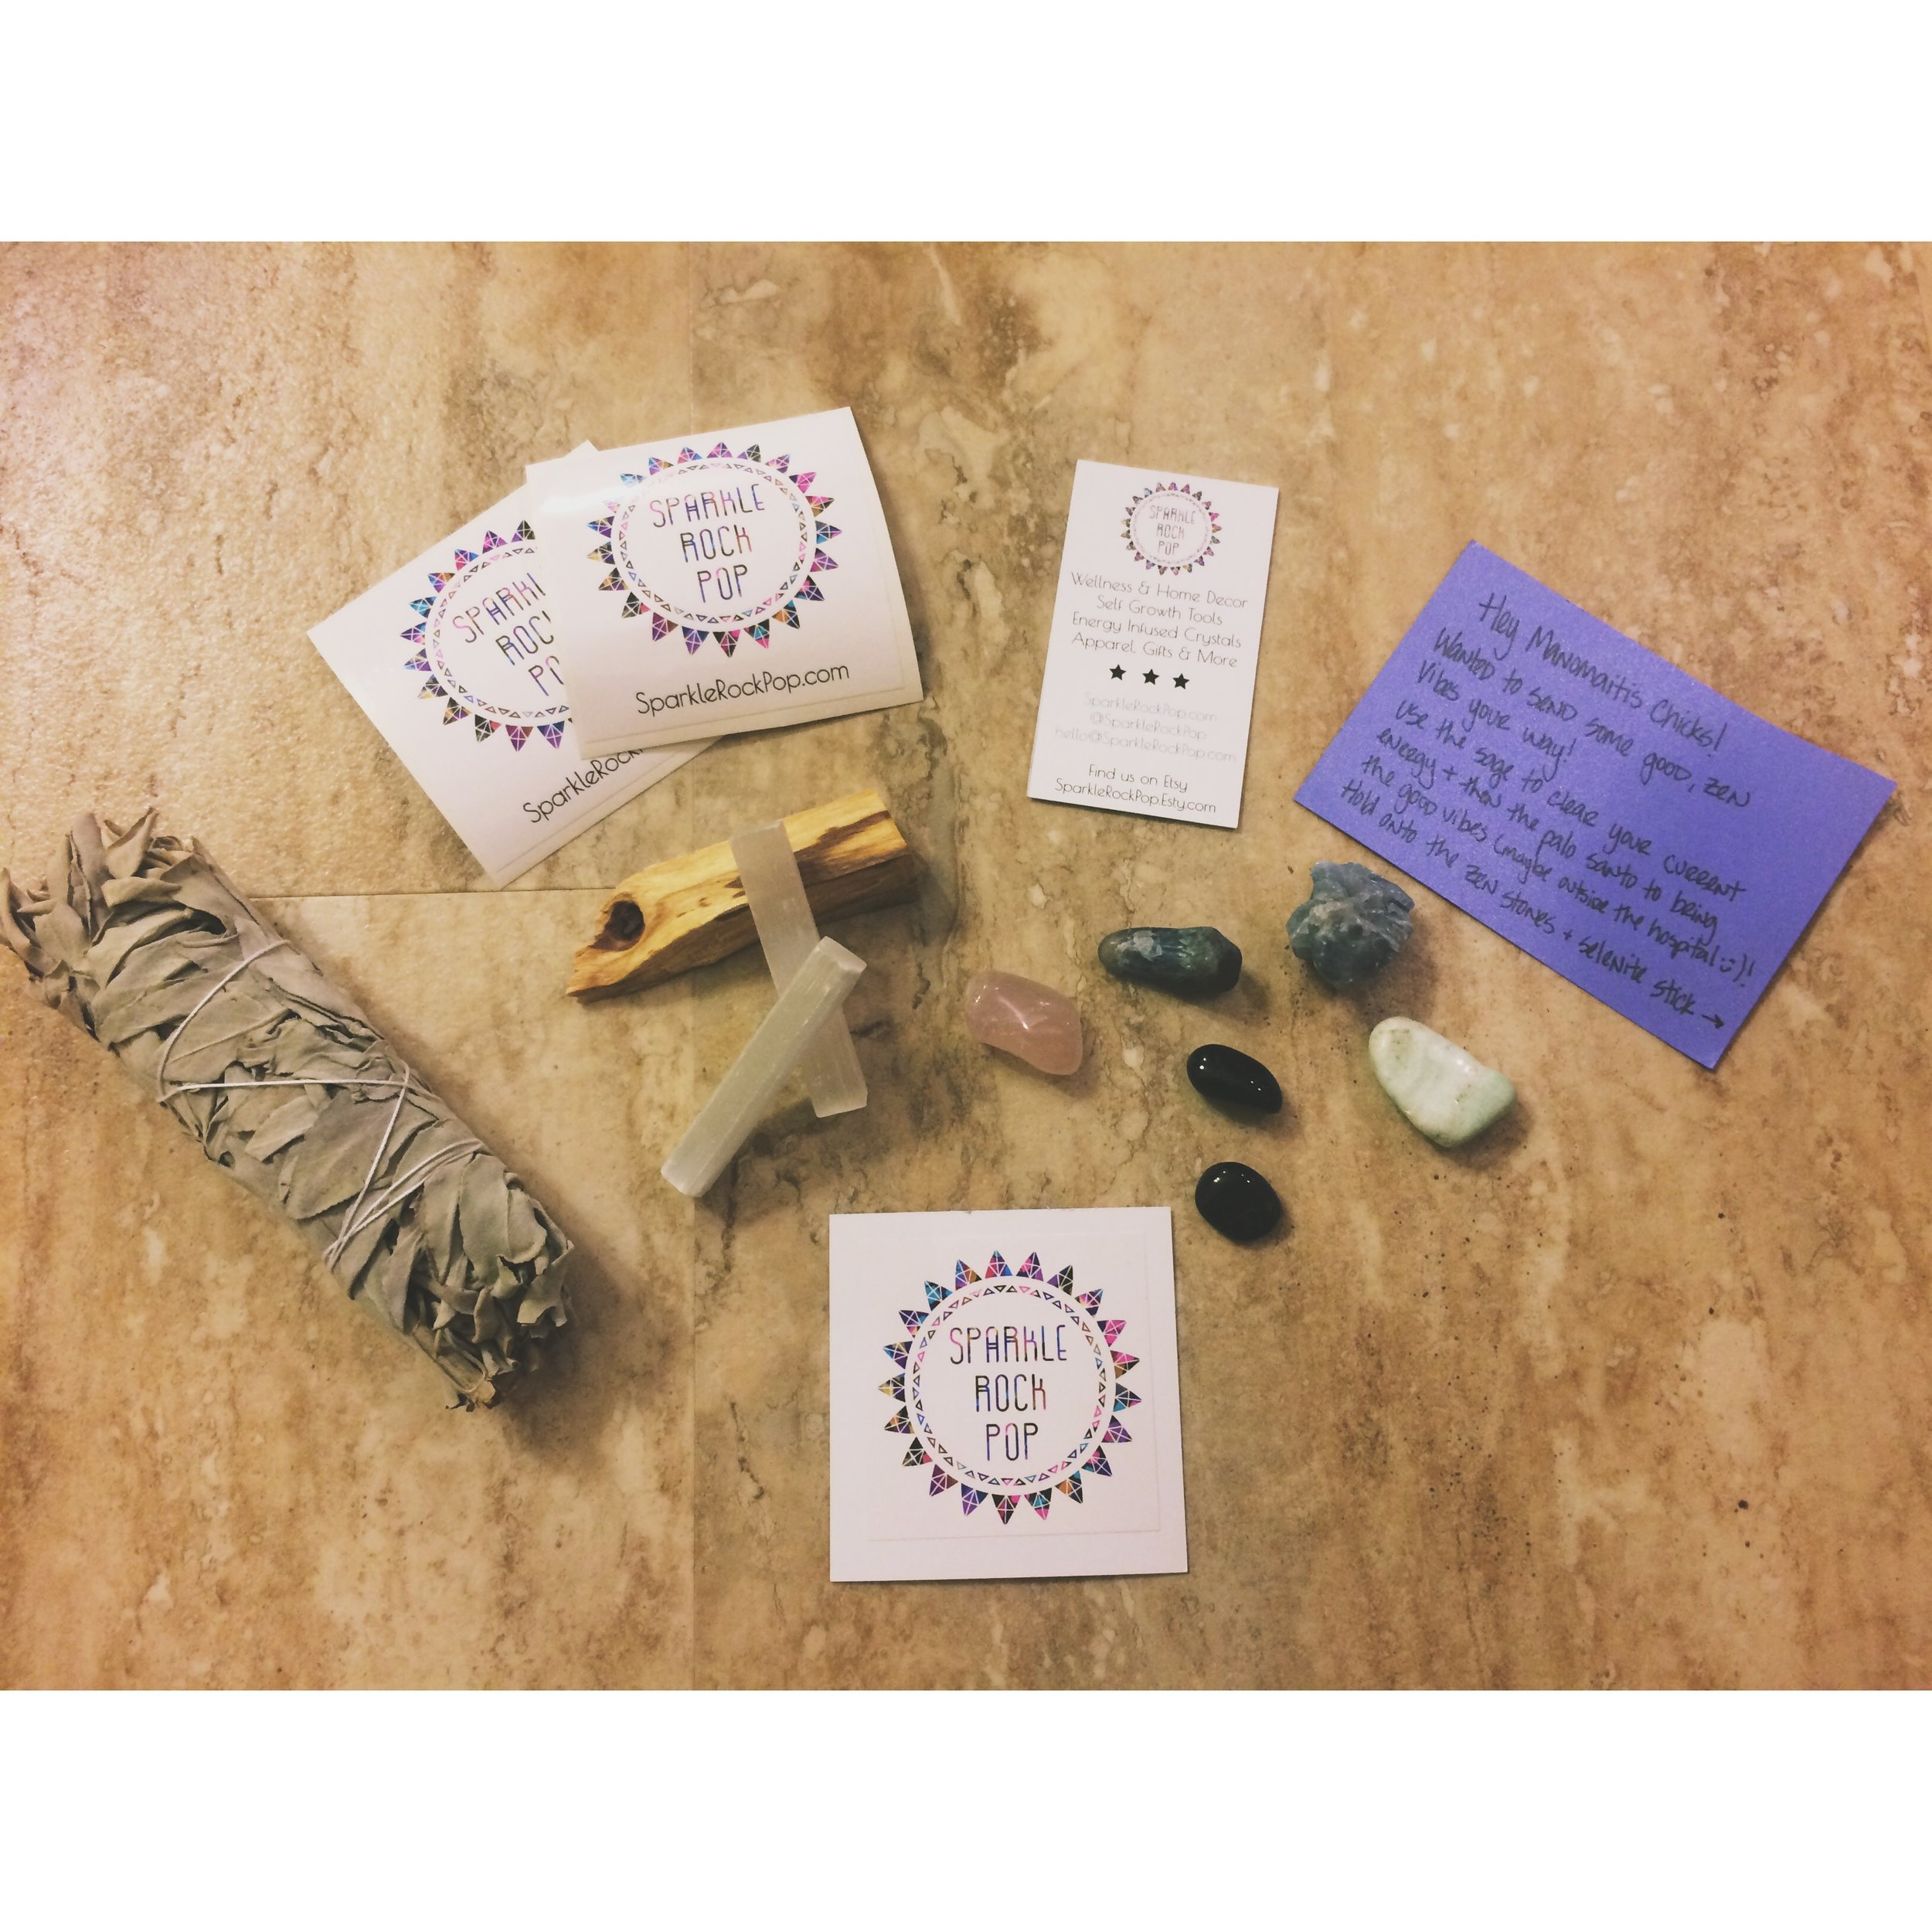 A cheer you up and good vibes package from my friend Devin and her new cool company,  Sparkle Rock Pop